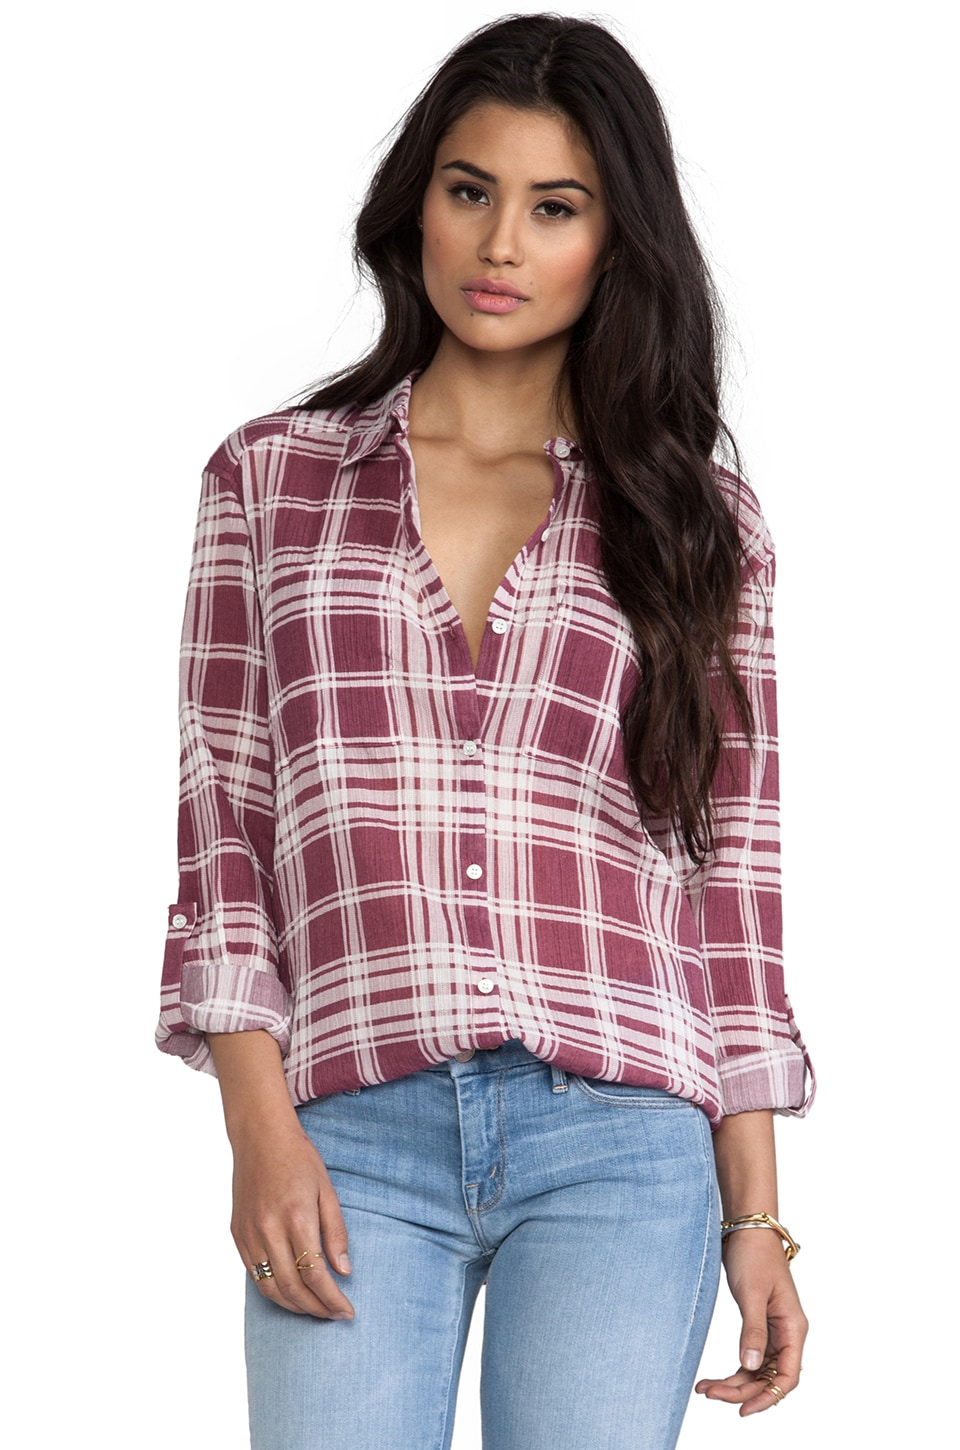 Soft Joie Lieutenant Top in Dry Raspberry